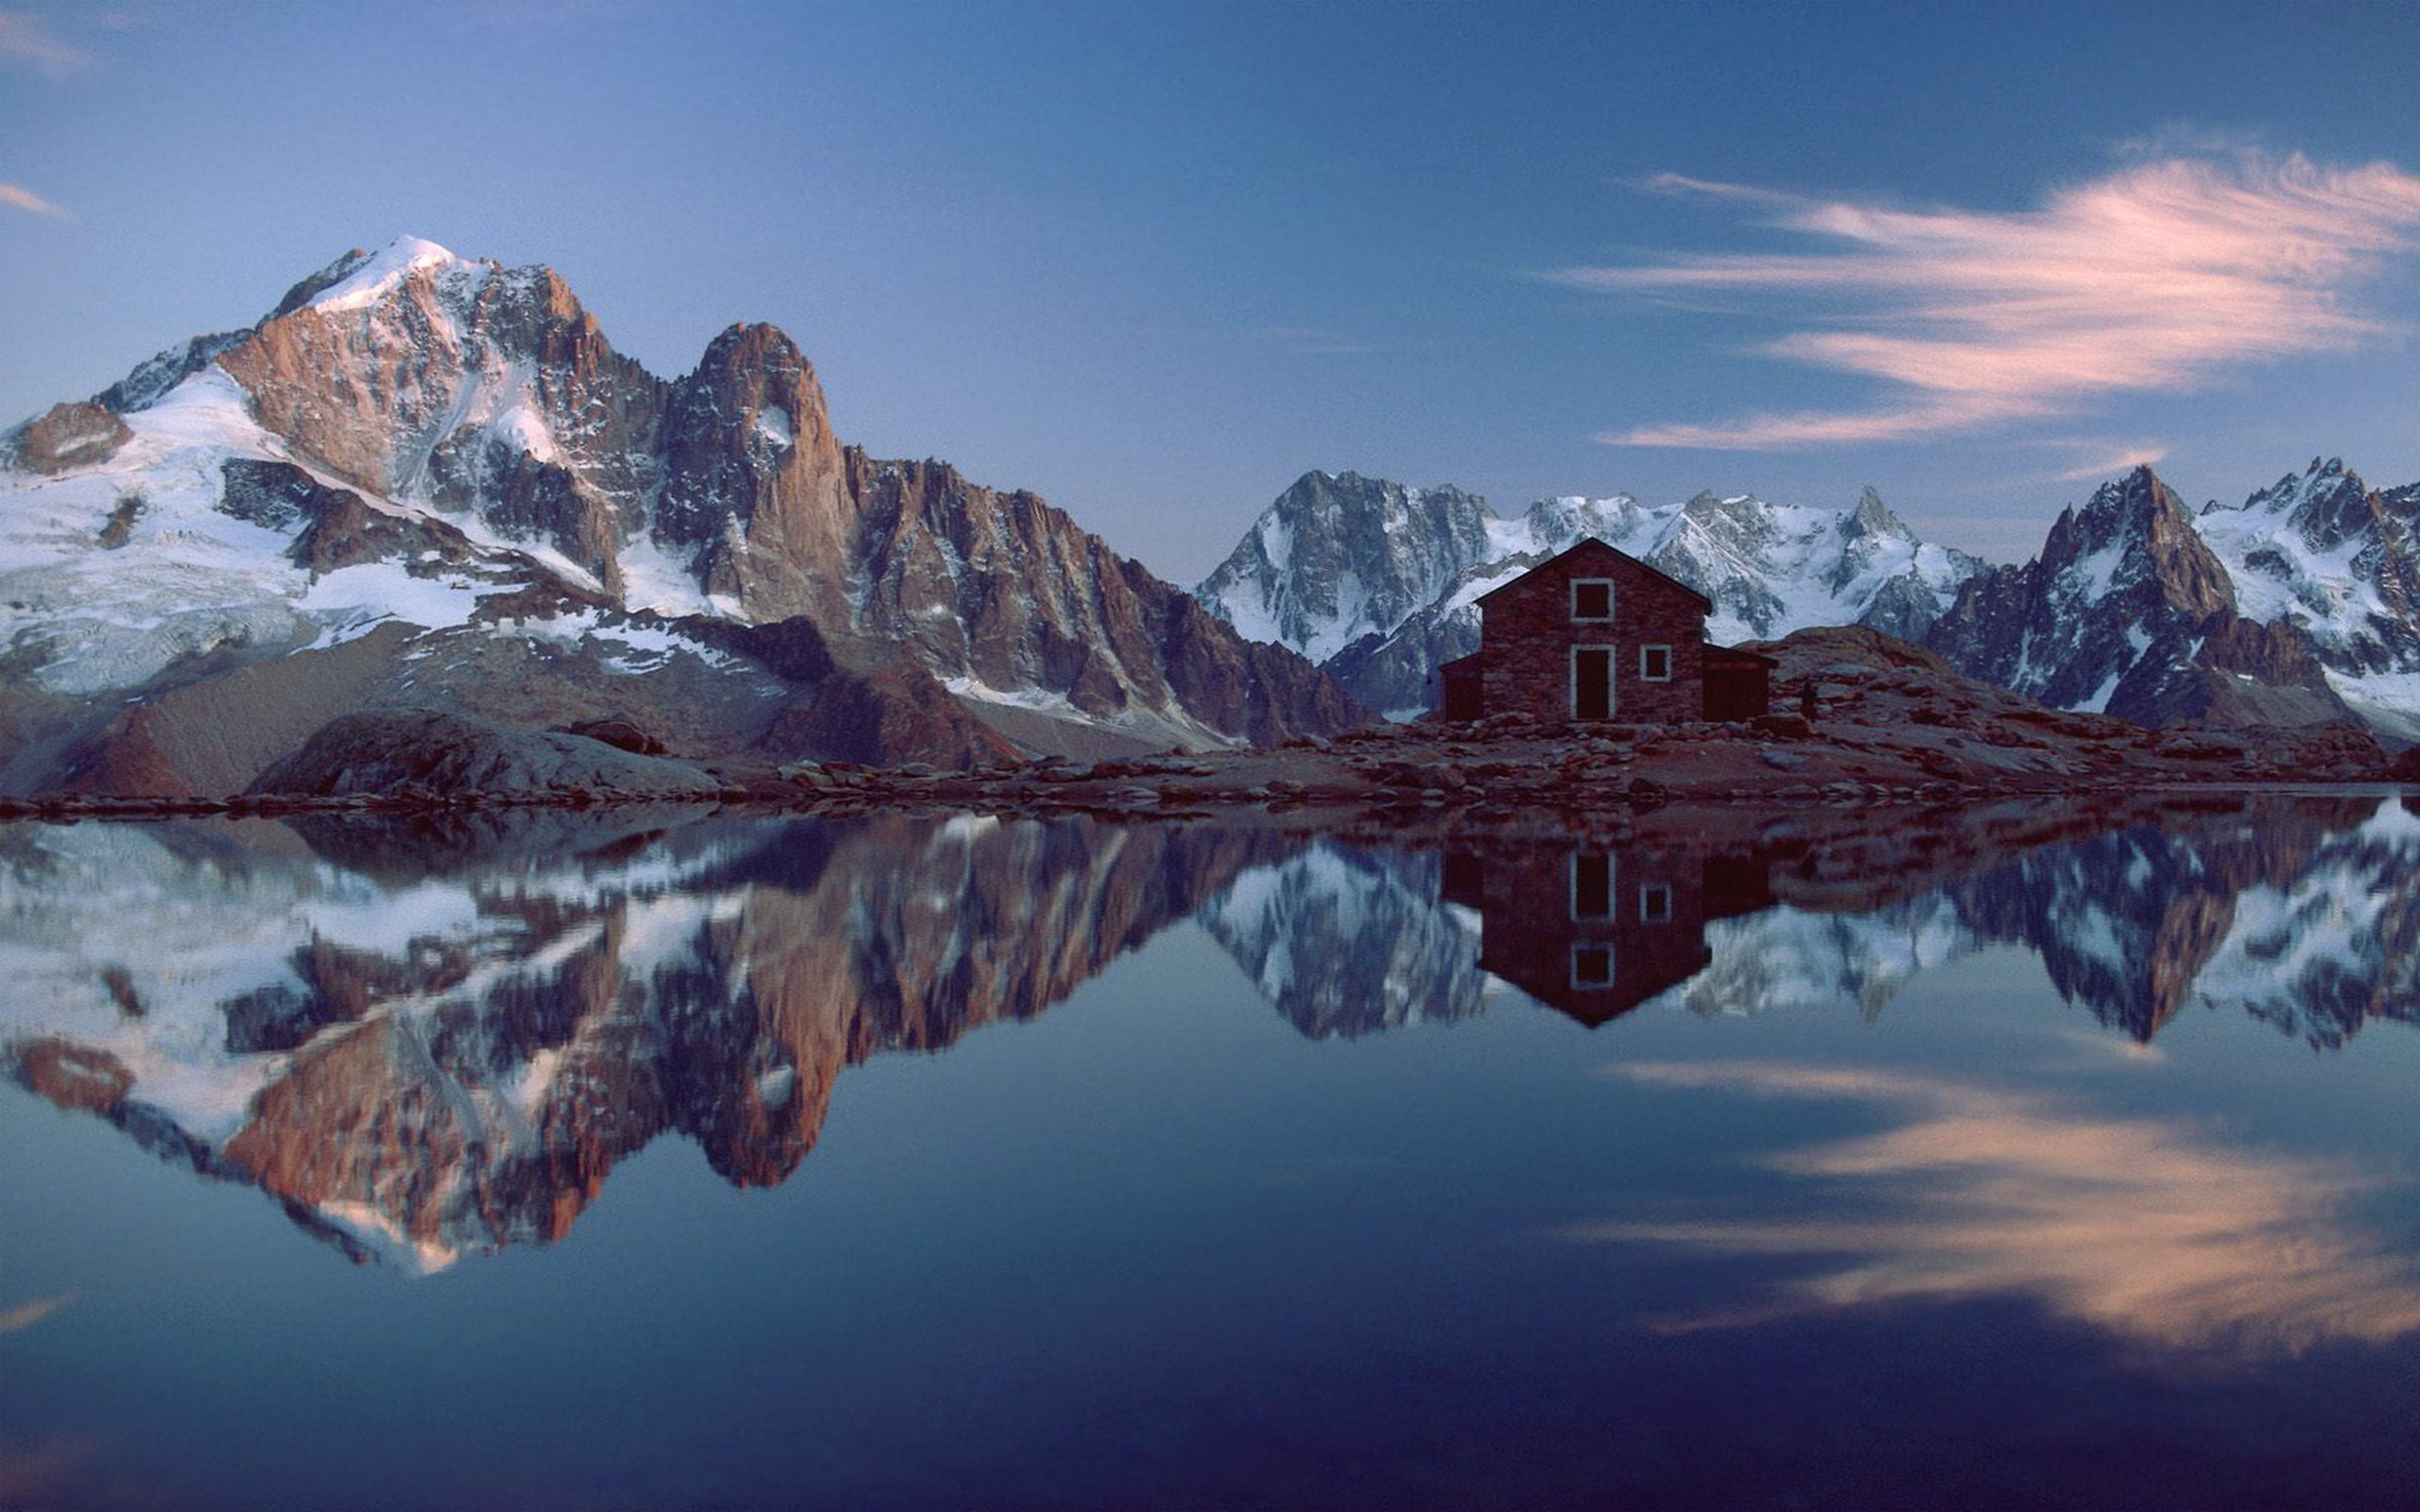 the lake house reflection Wallpaper Background | 37251 1964